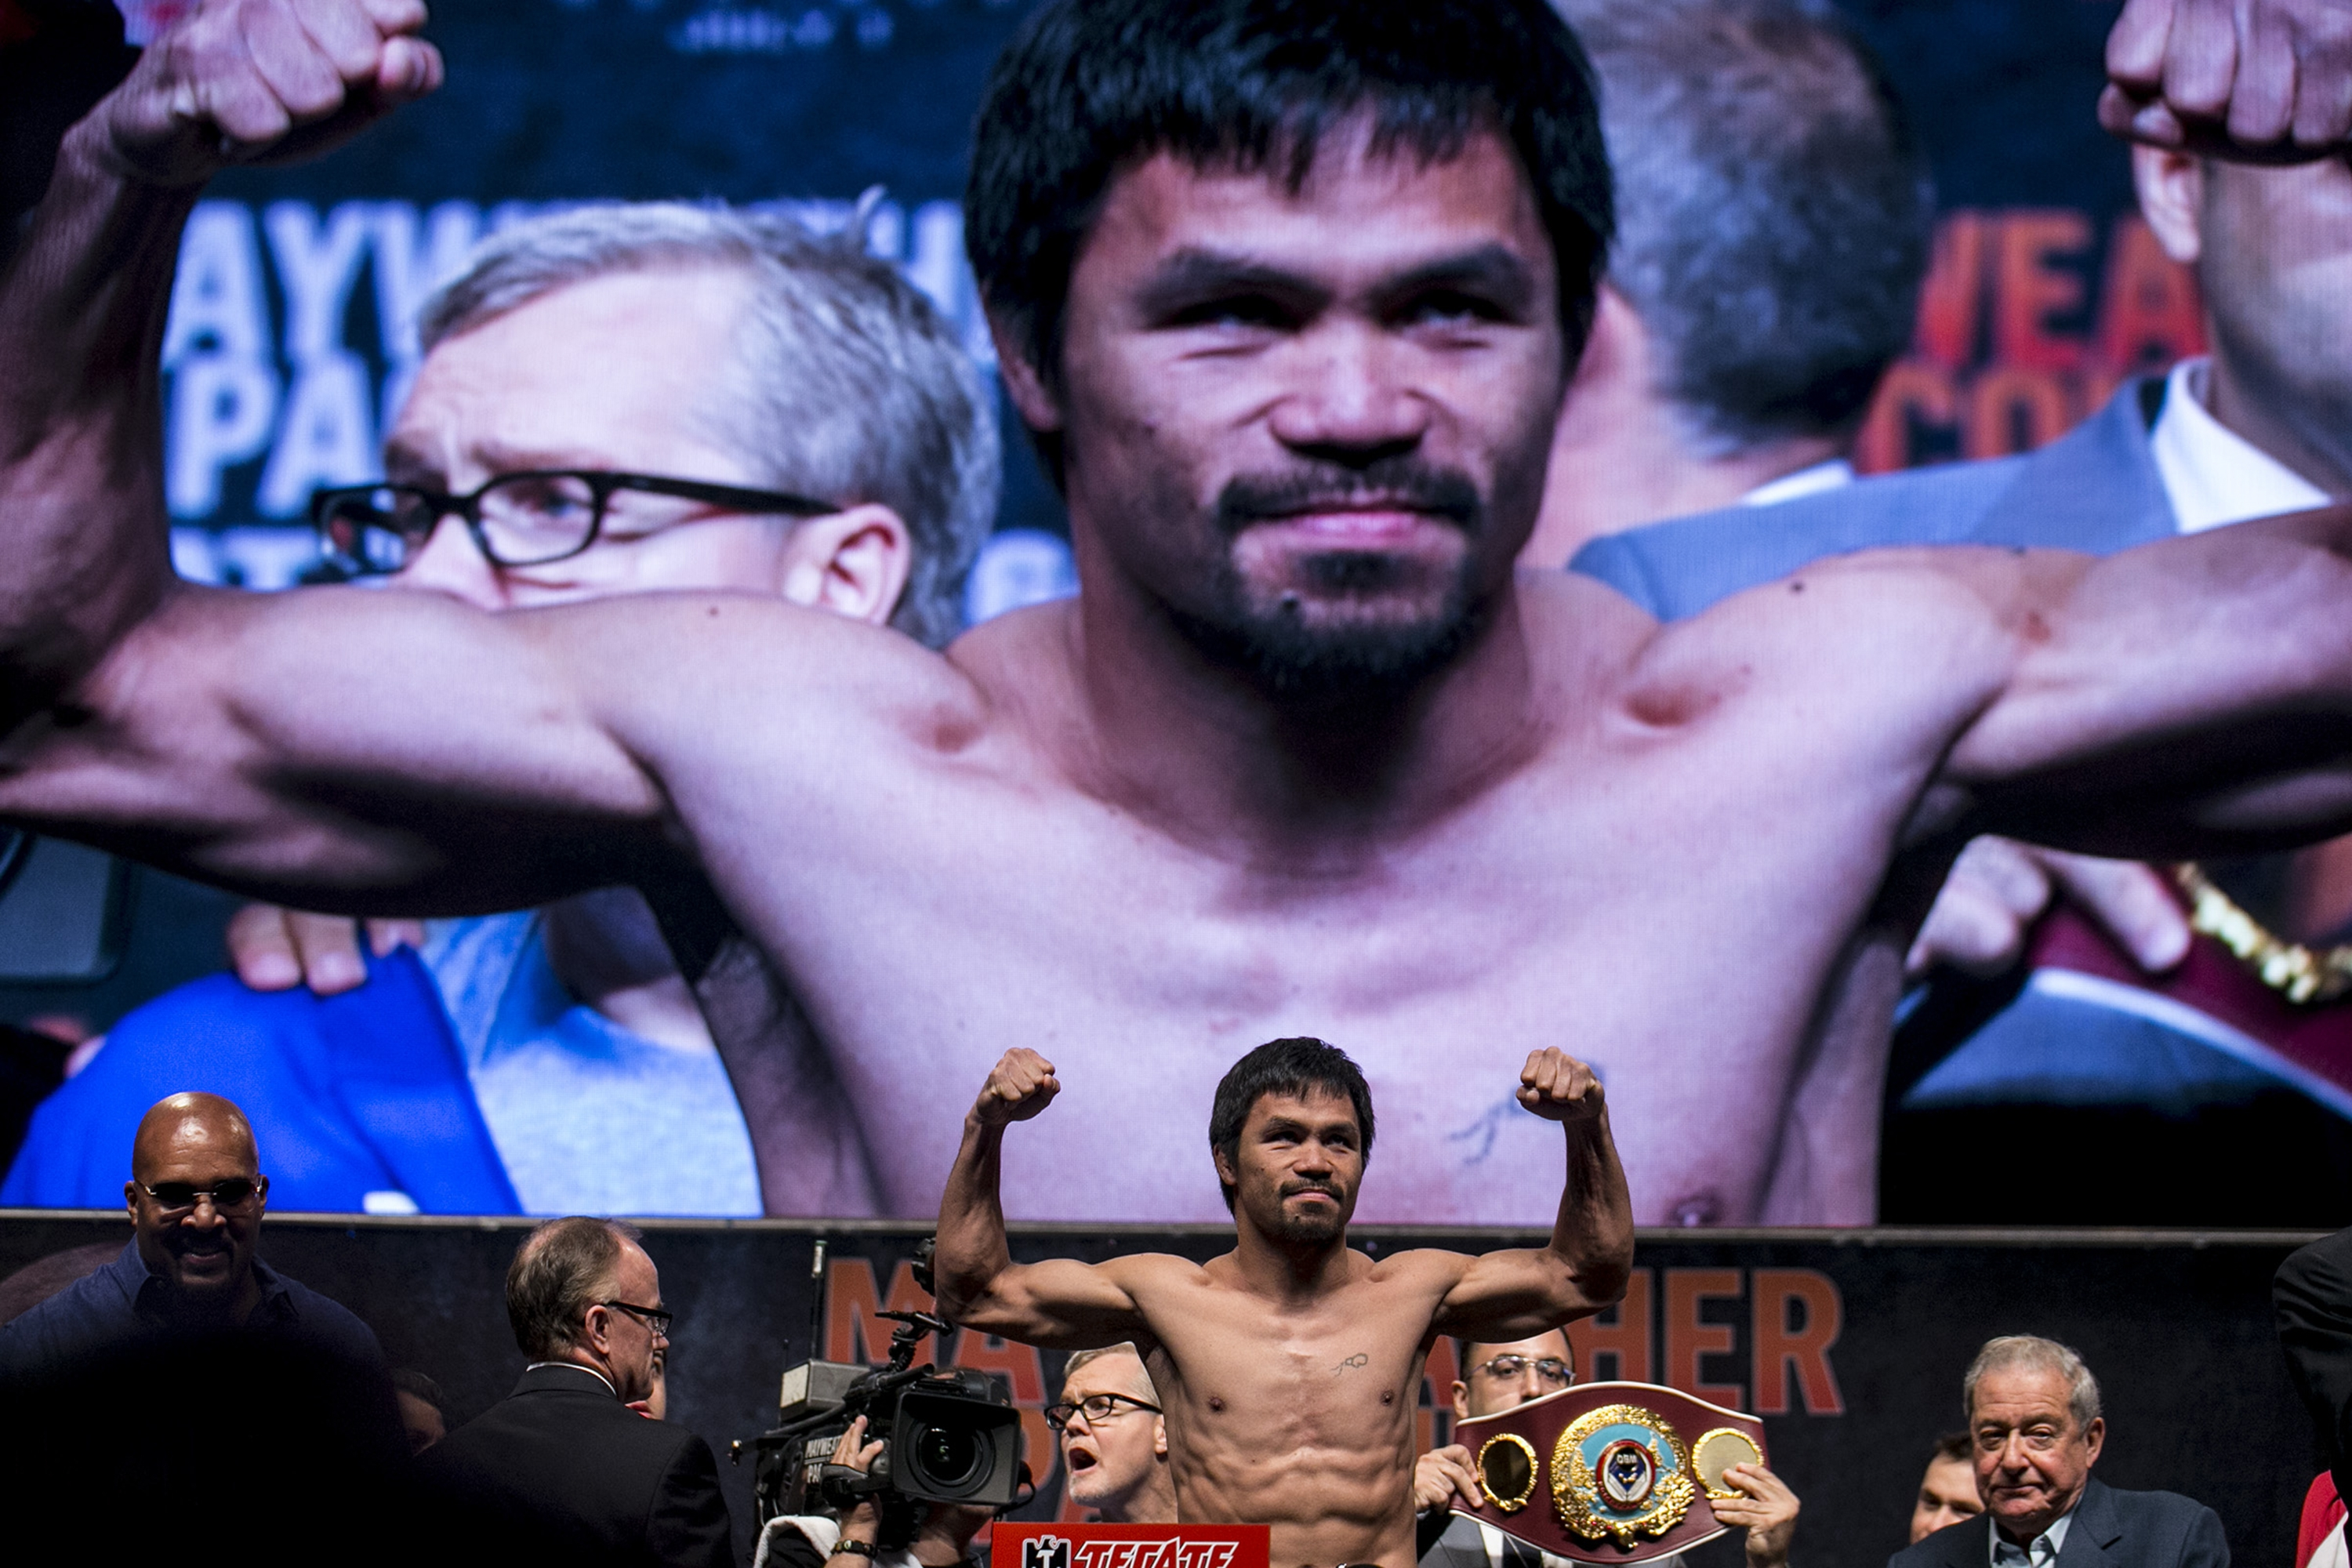 Manny Pacquiao is the people's choice in Saturday night's fight, but Floyd Mayweather Jr. is the favorite.